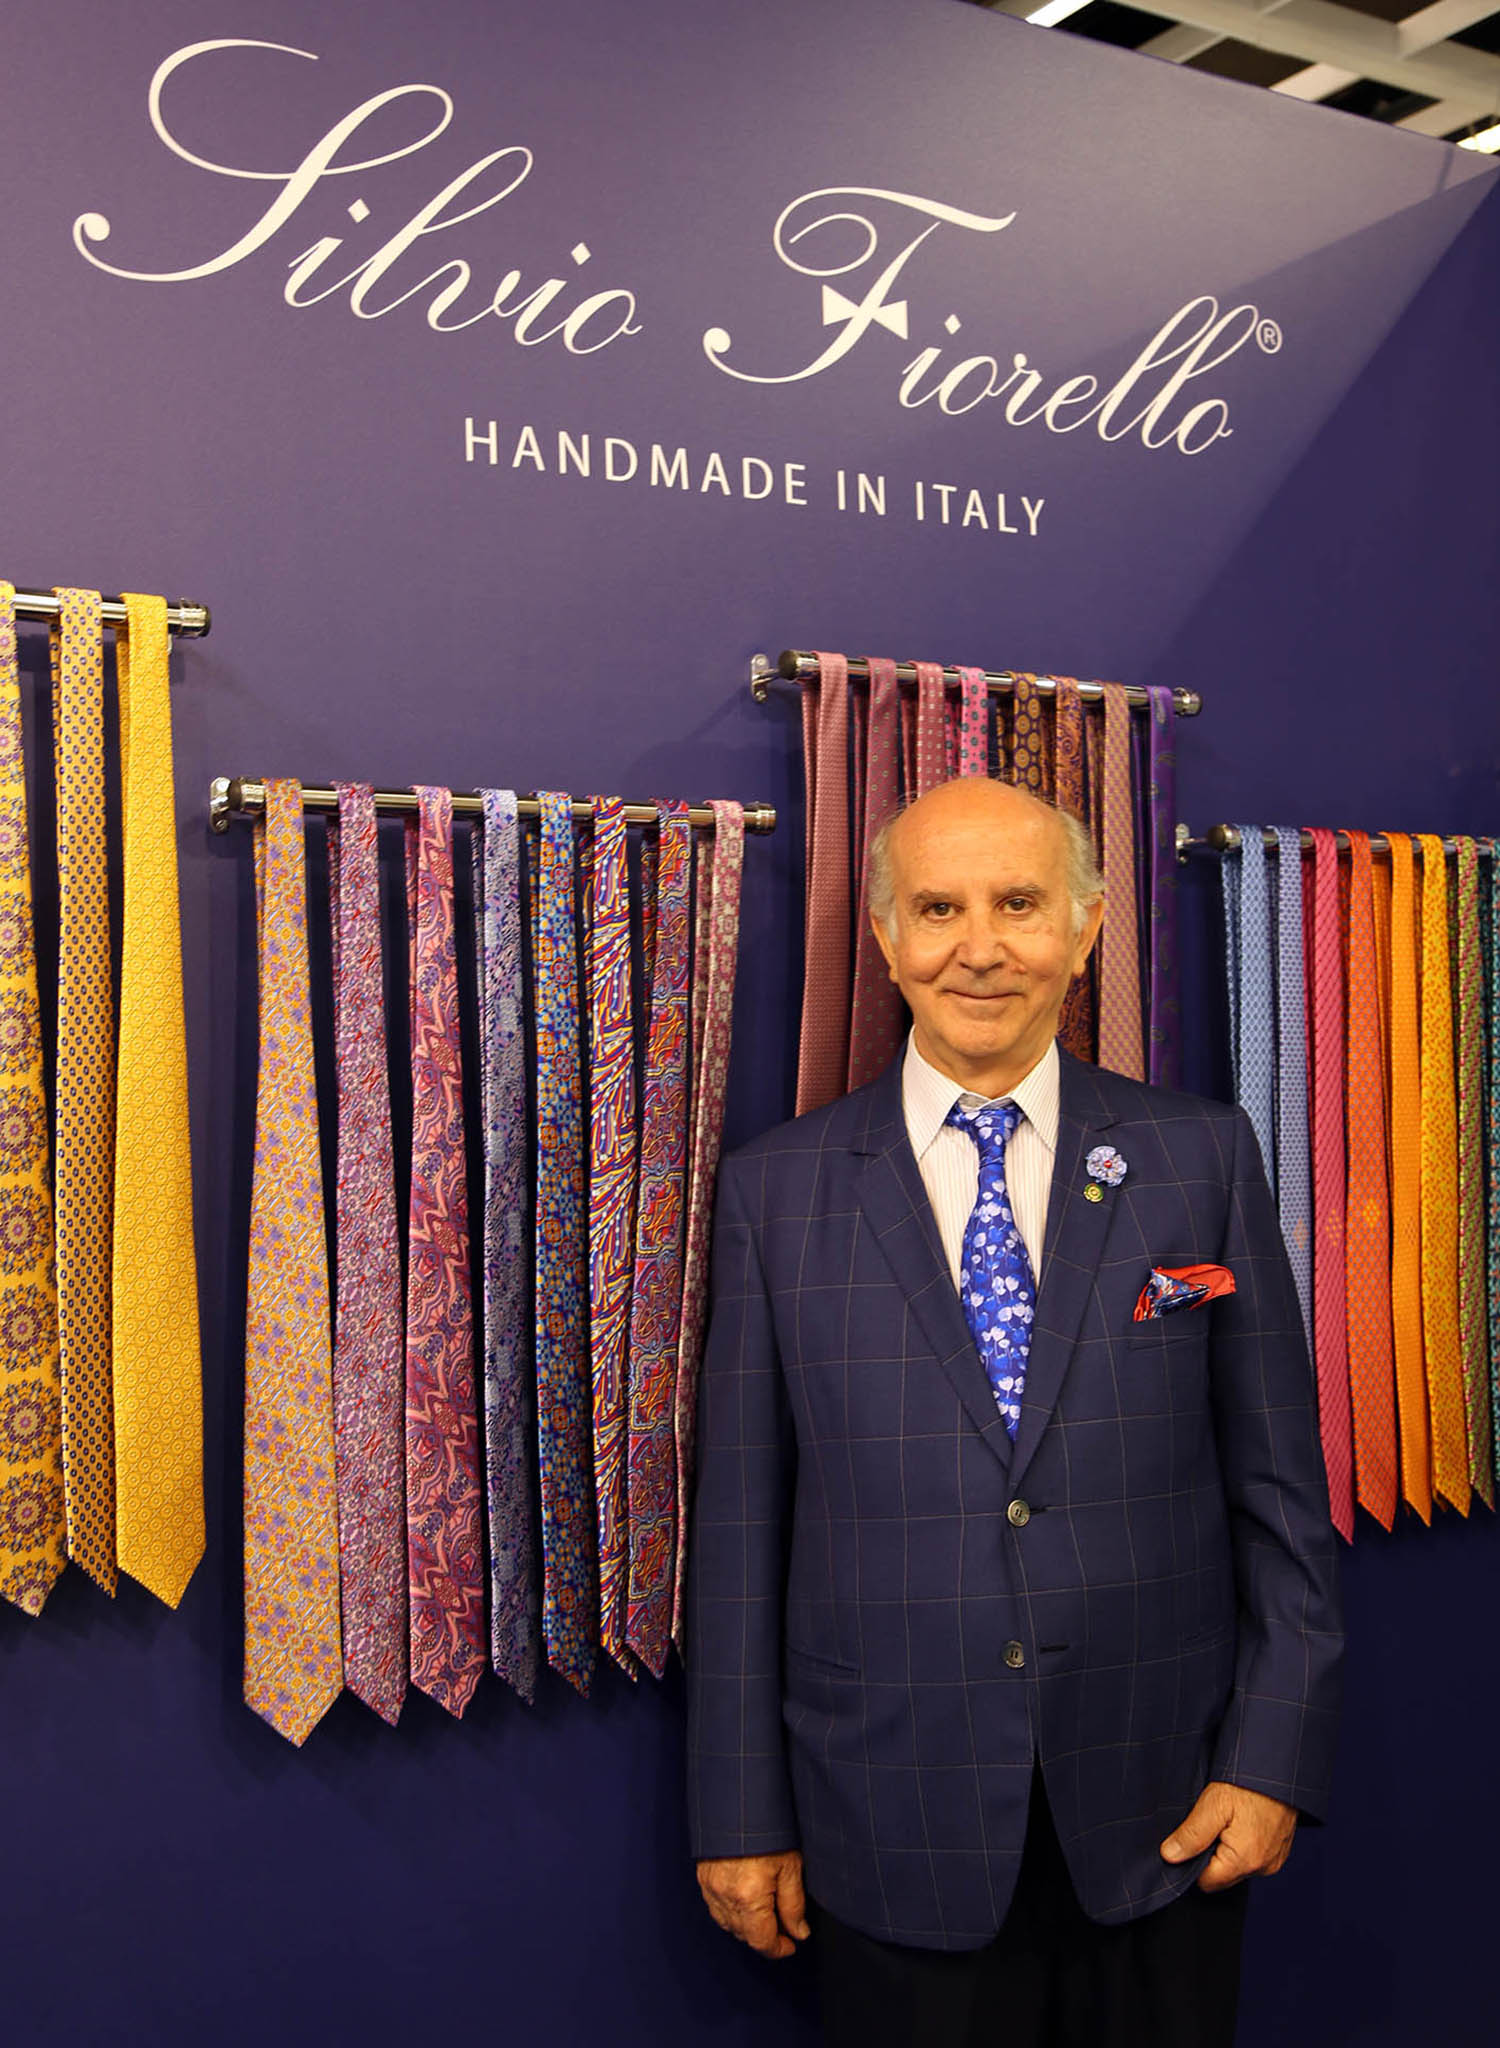 Silvio Fiorello in person with his tie display.